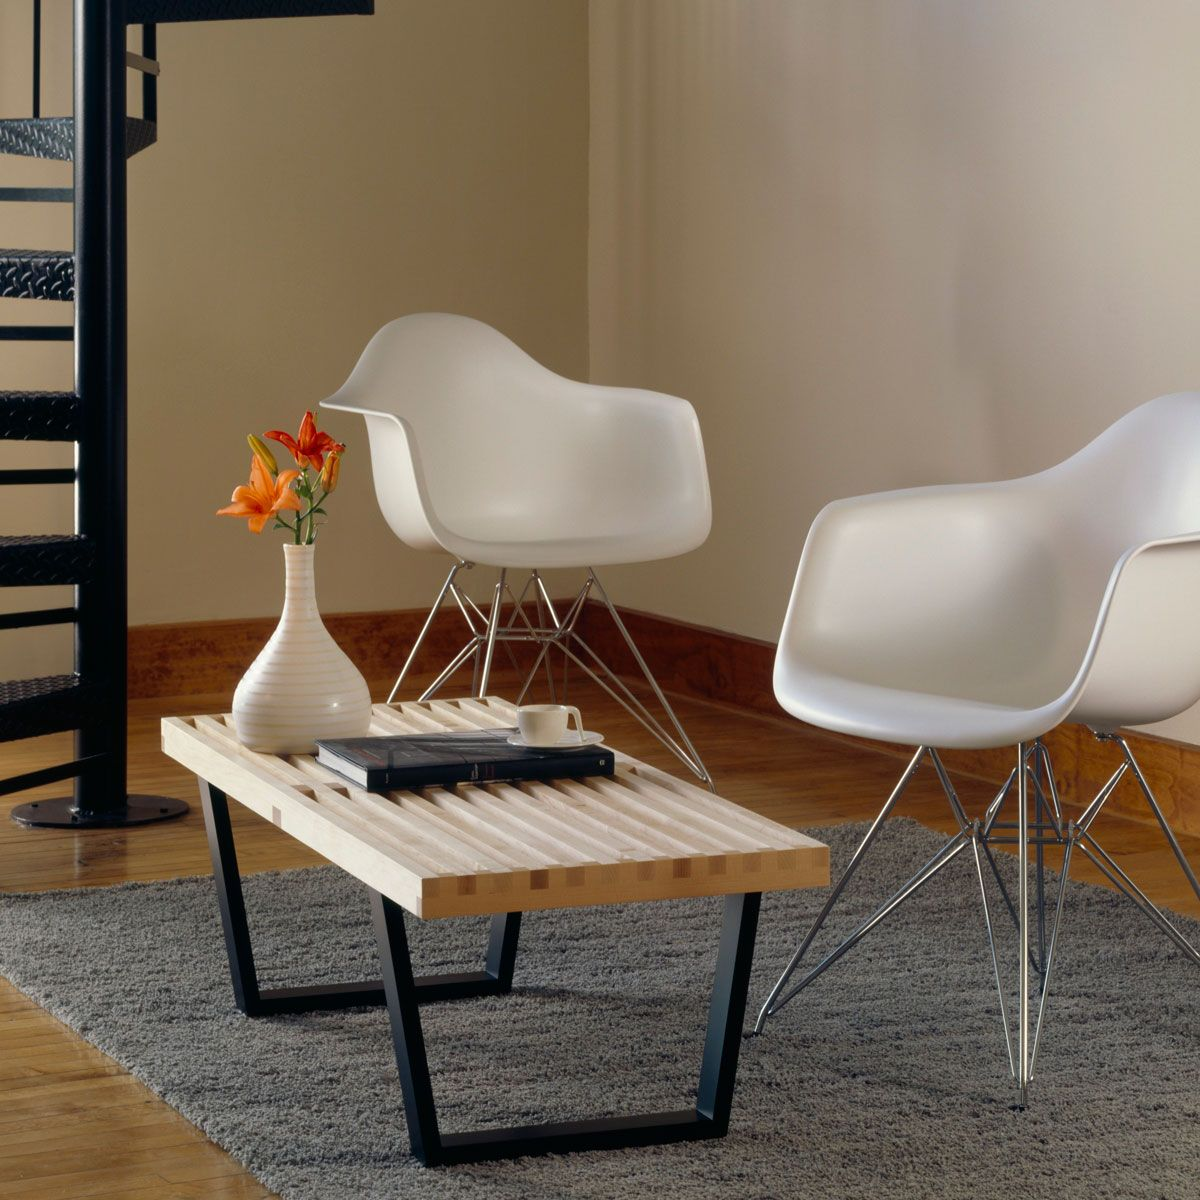 Vitra Nelson Bench. Mid century modern furniture